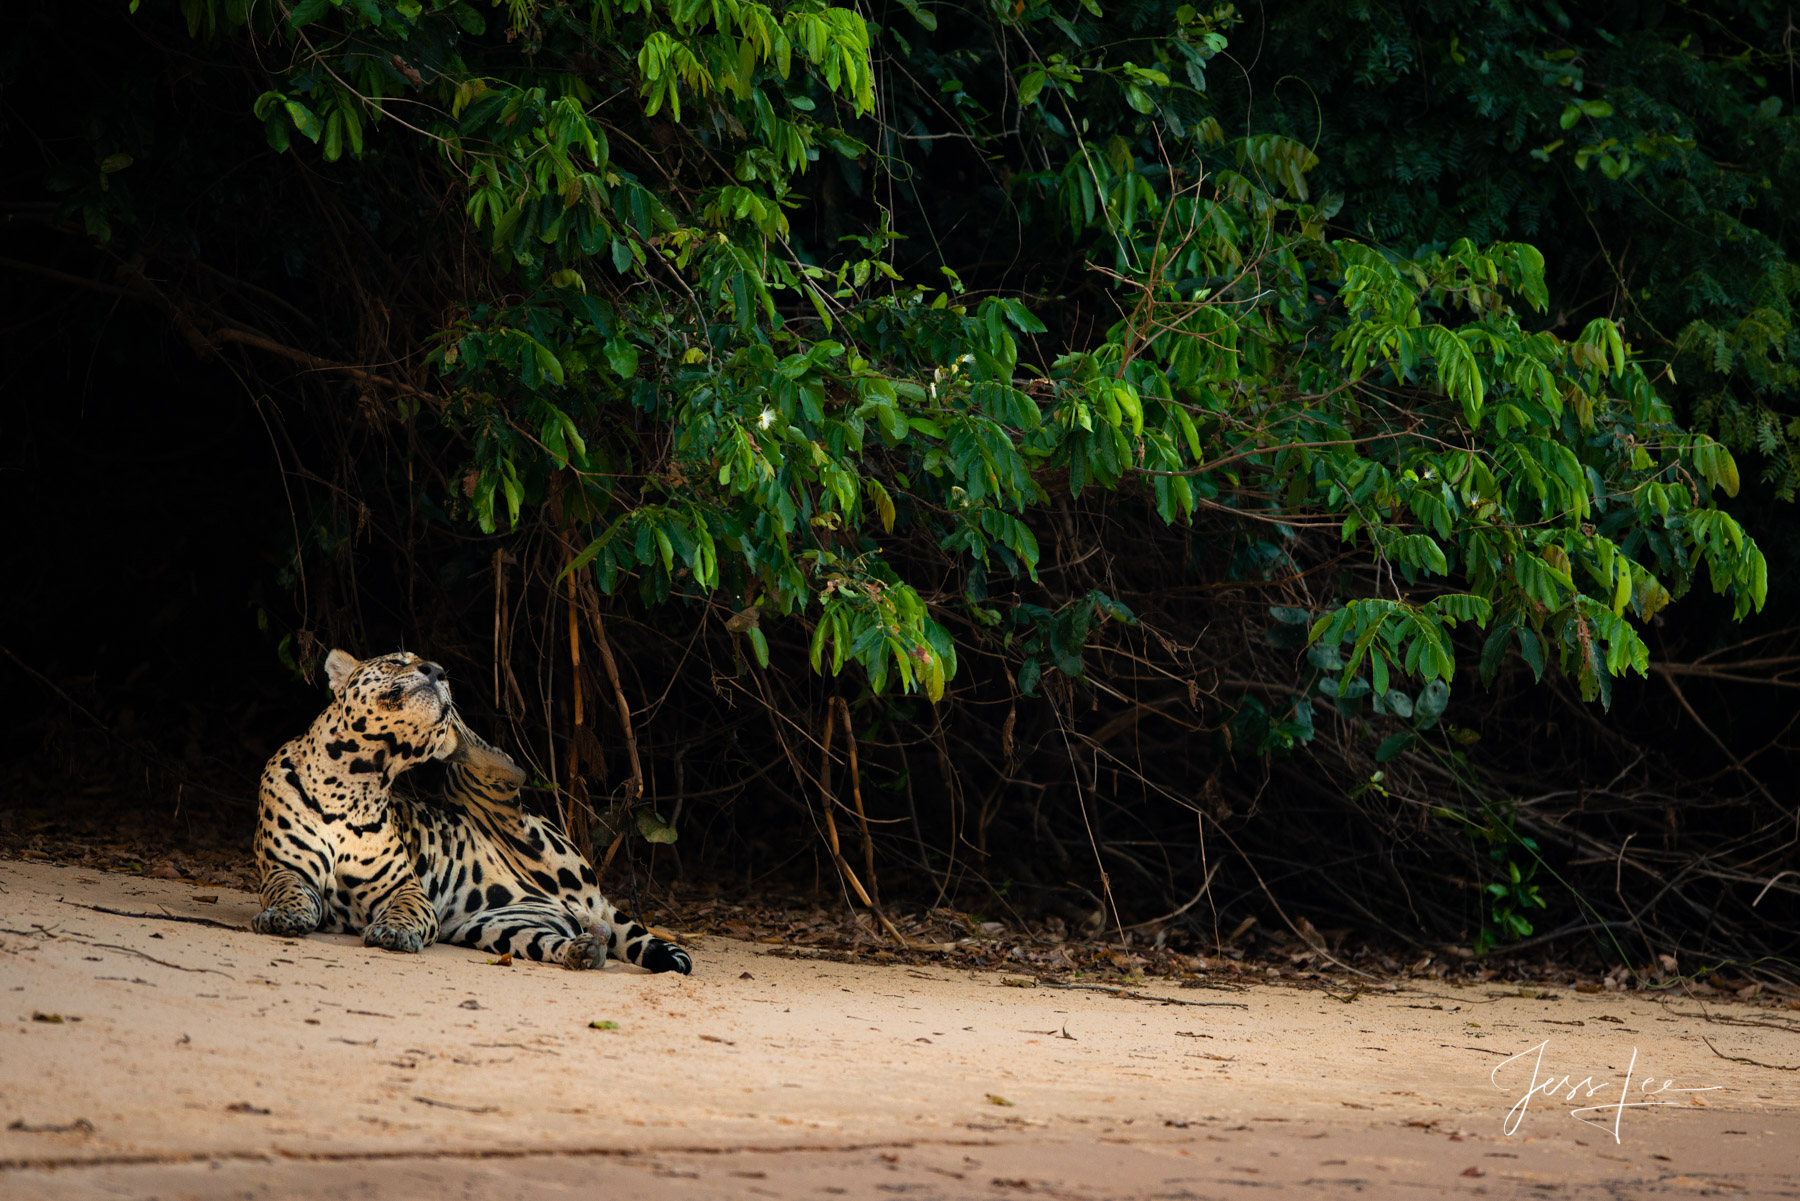 Fine art Jaguar scratching an itch print limited edition of 300 luxury prints by Jess Lee. All photographs copyright © Jess...